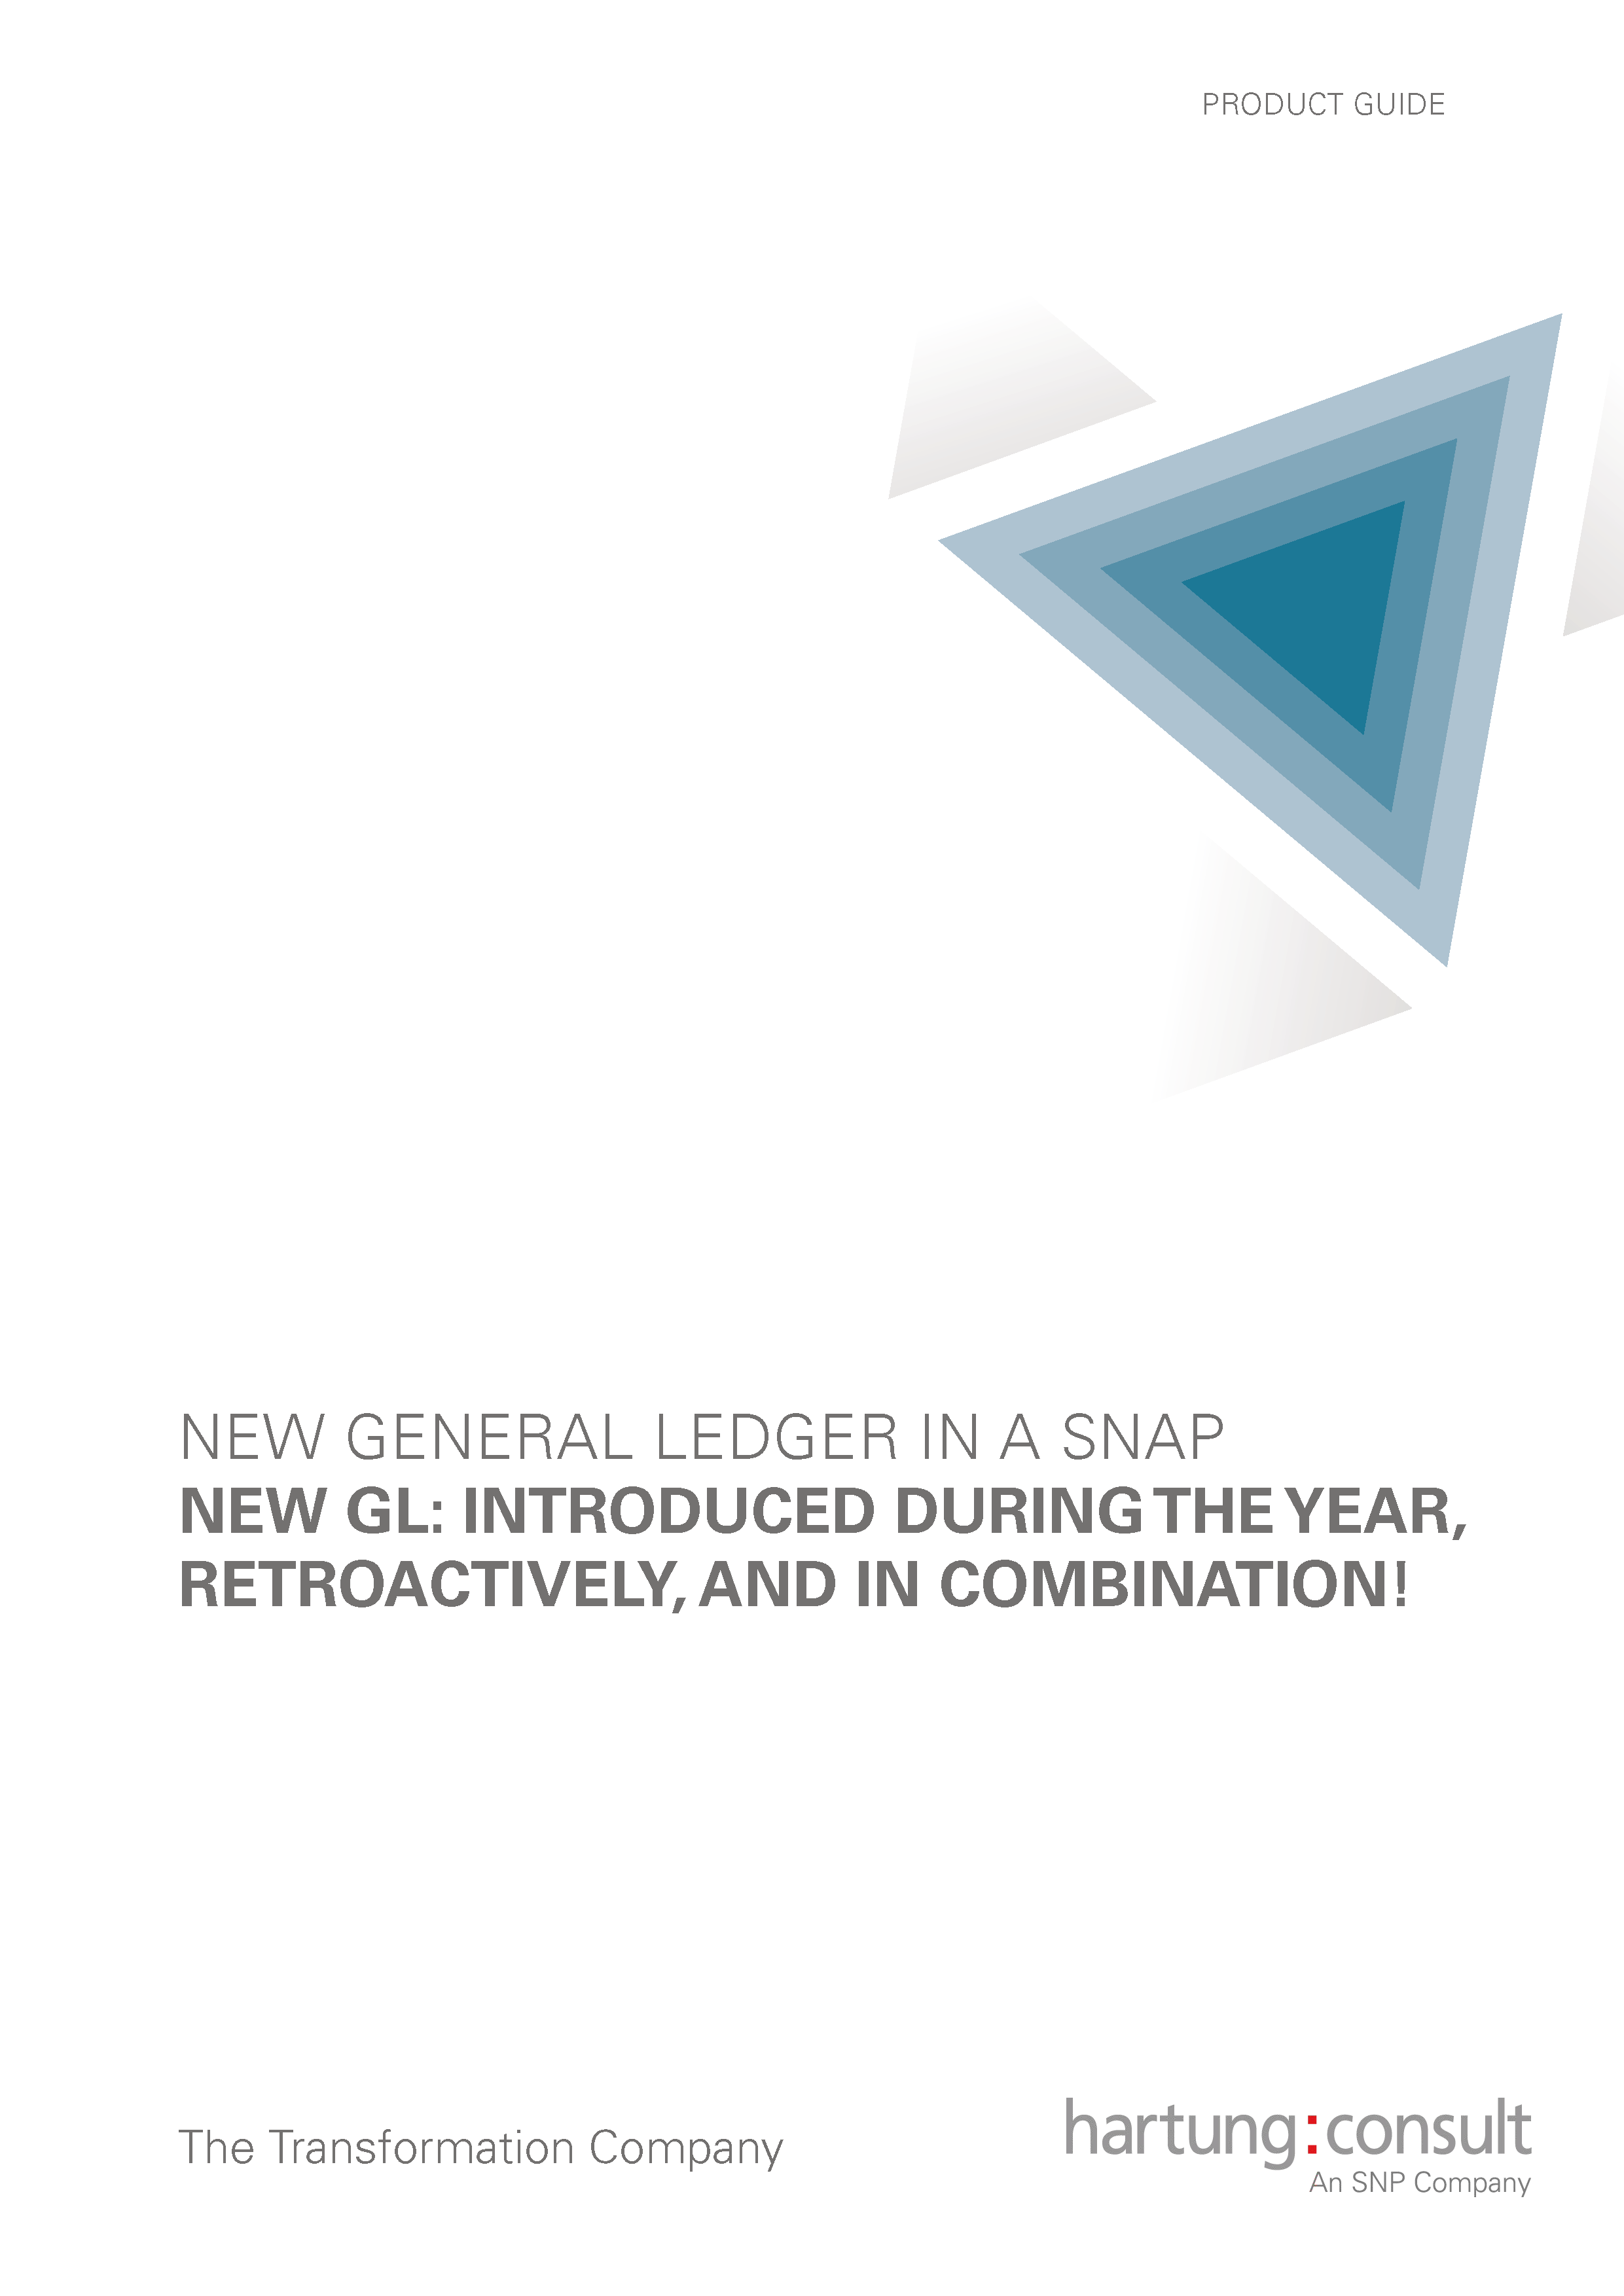 10.SNP_Product_Guide_New_GL_in_a_Snap_Page_1.png